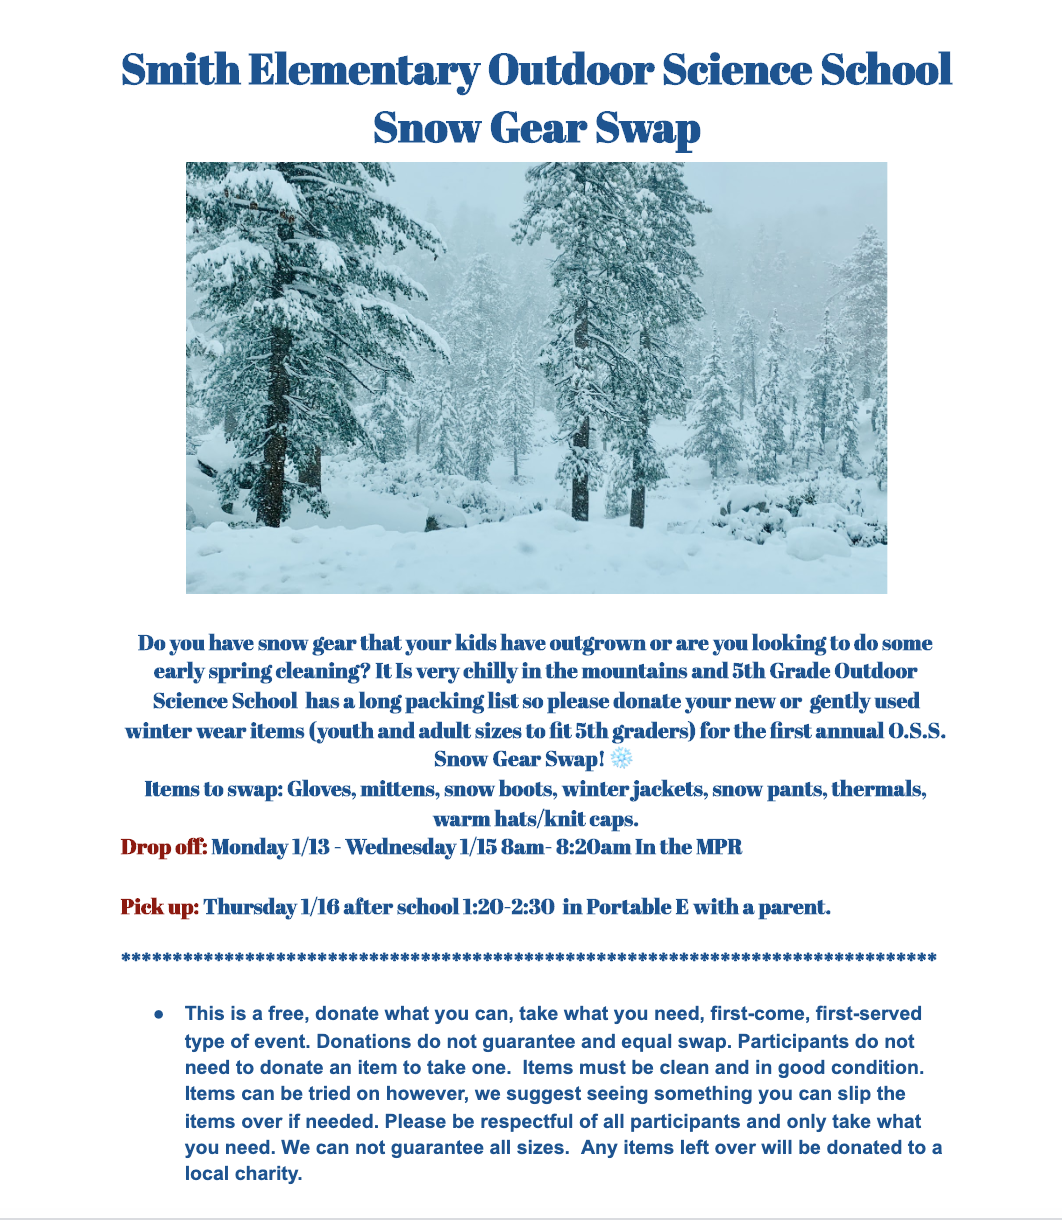 Snow Gear Swap for 5th Grade Students